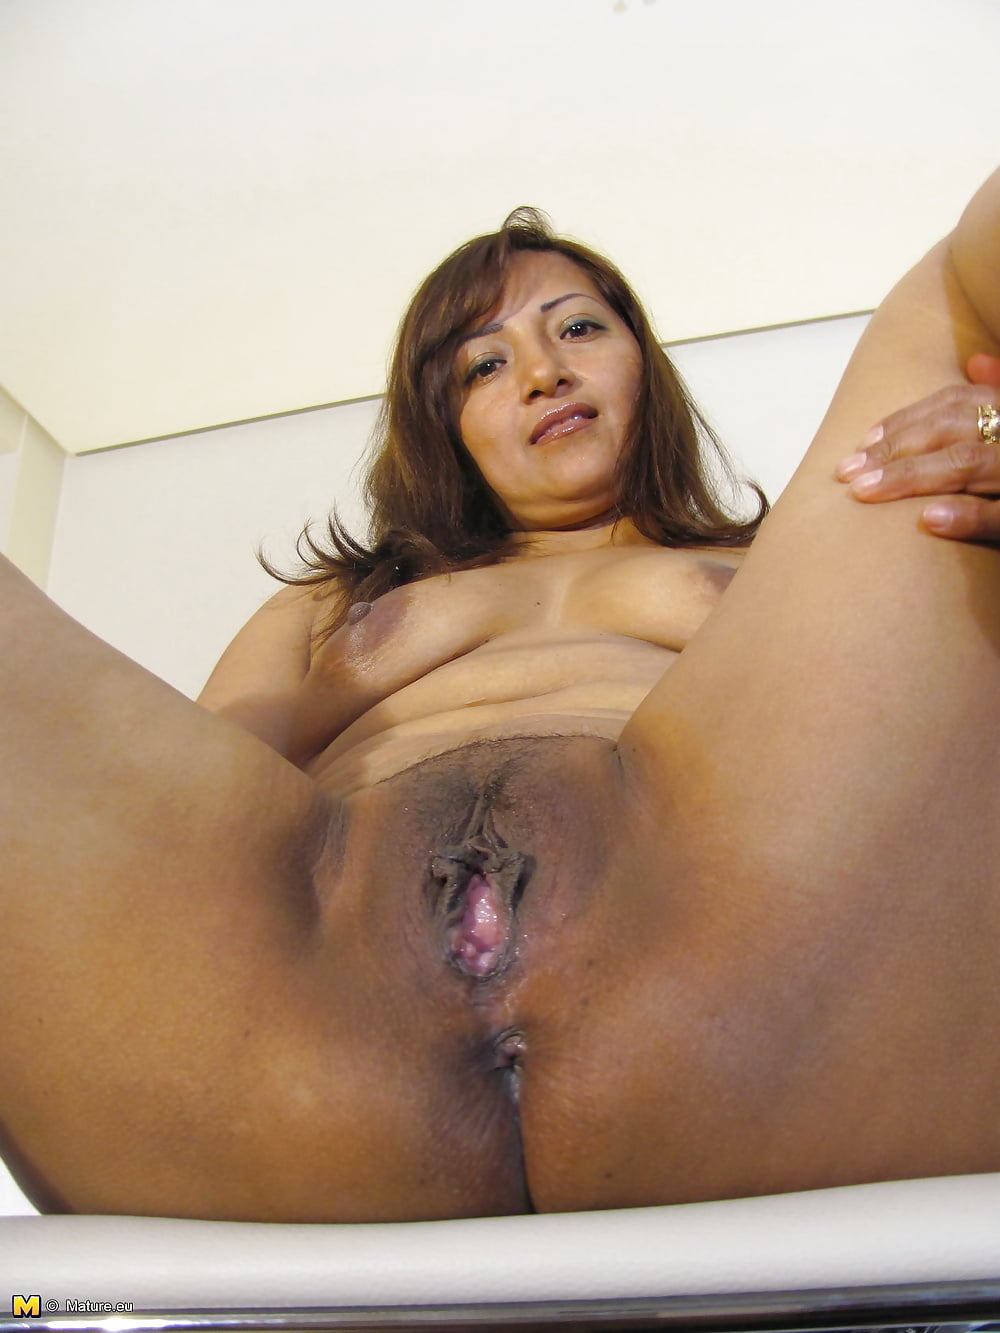 Old latinas pussy — photo 10